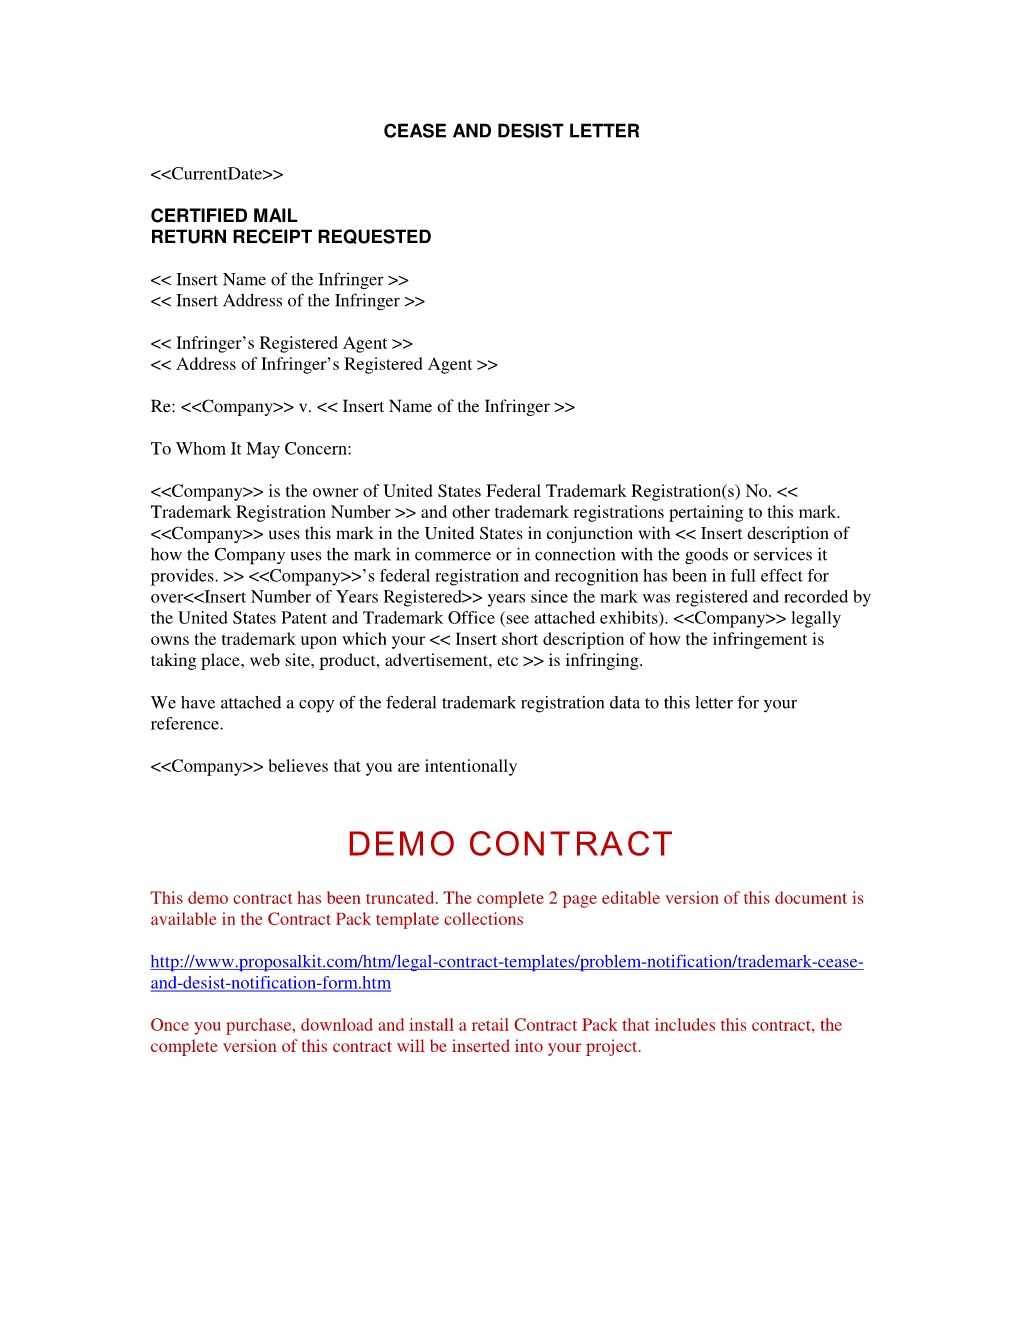 Response to Cease and Desist Letter Template - Sample Cease and Desist Letter to former Employee Ideas